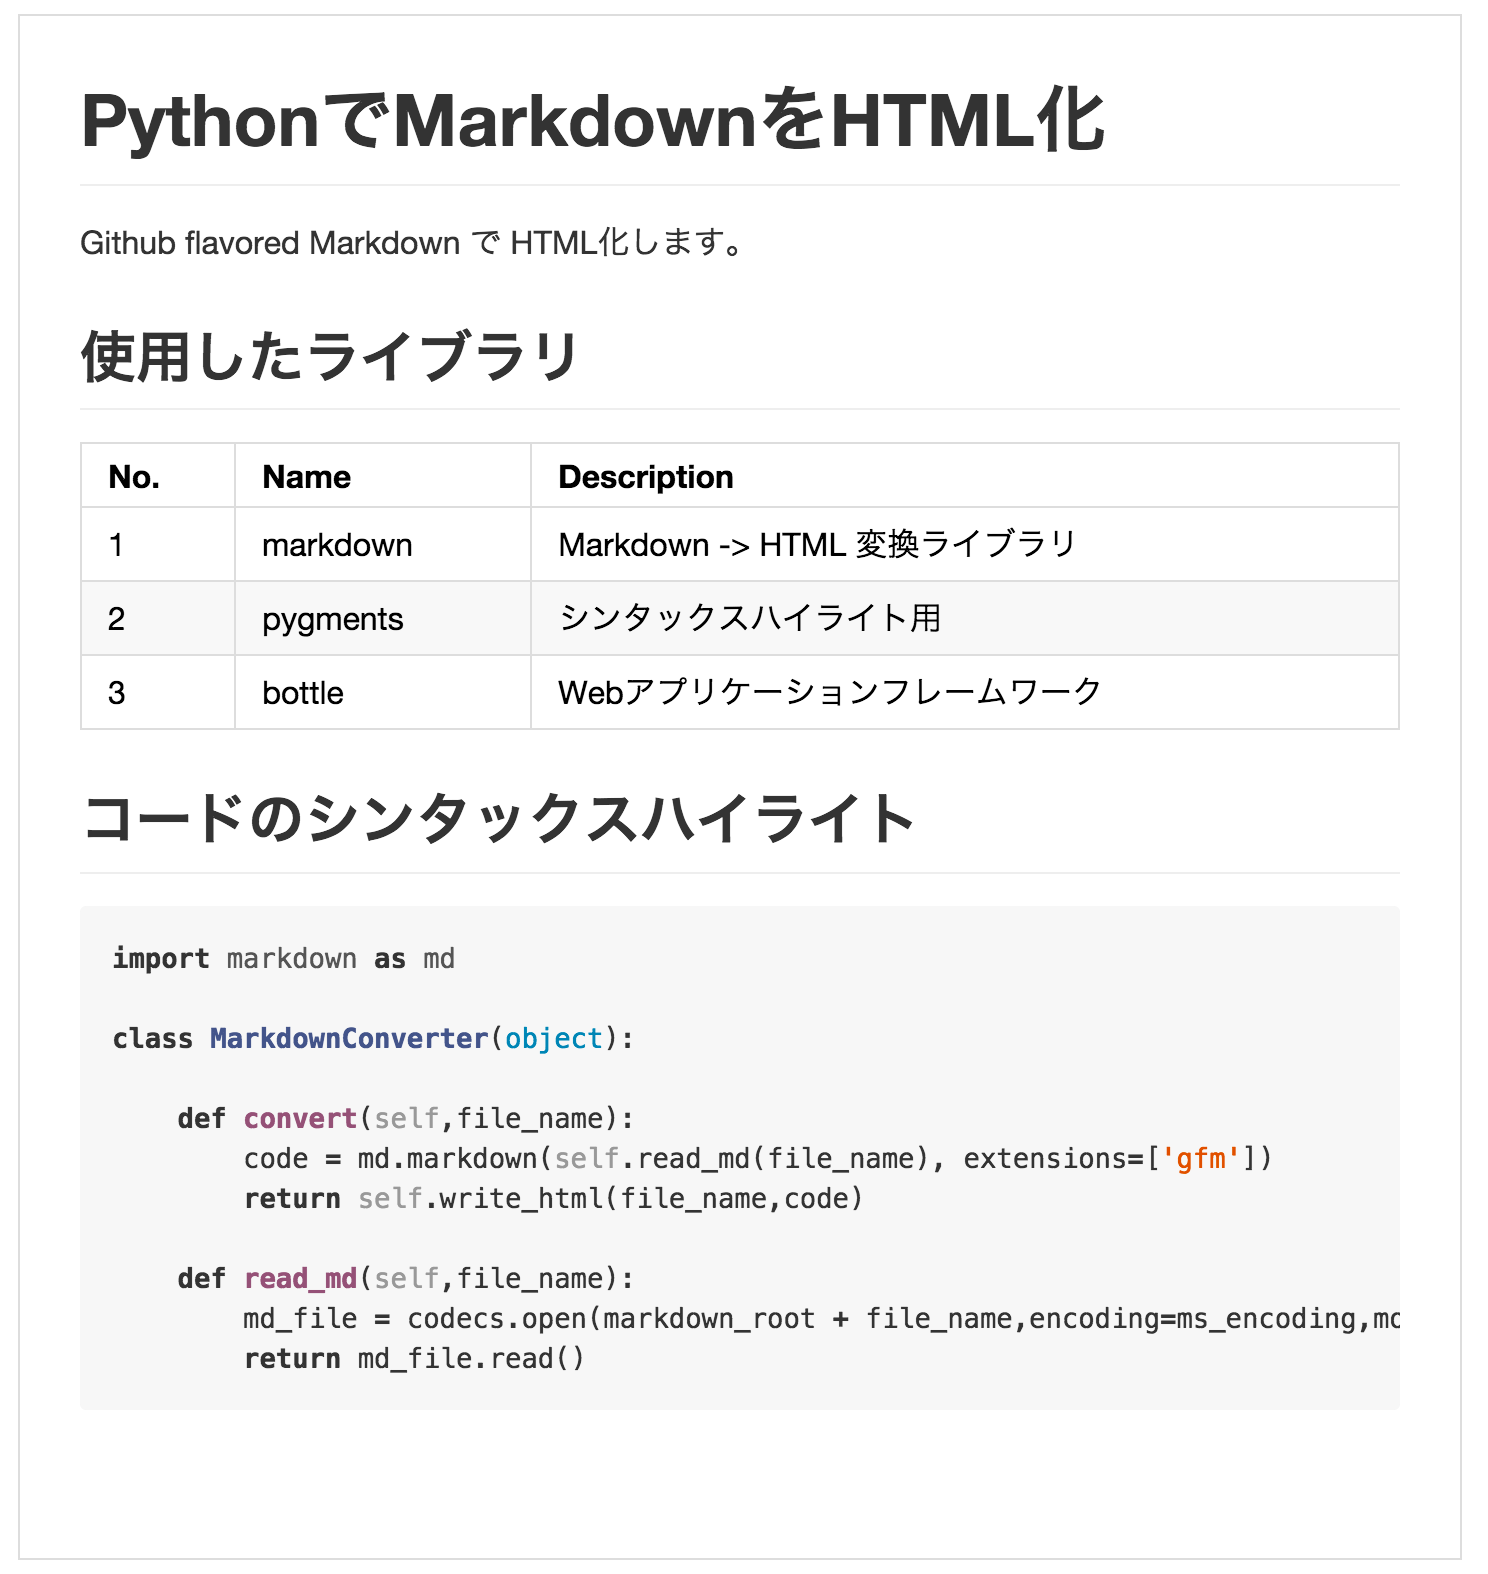 http:localhost/8009/sample.md